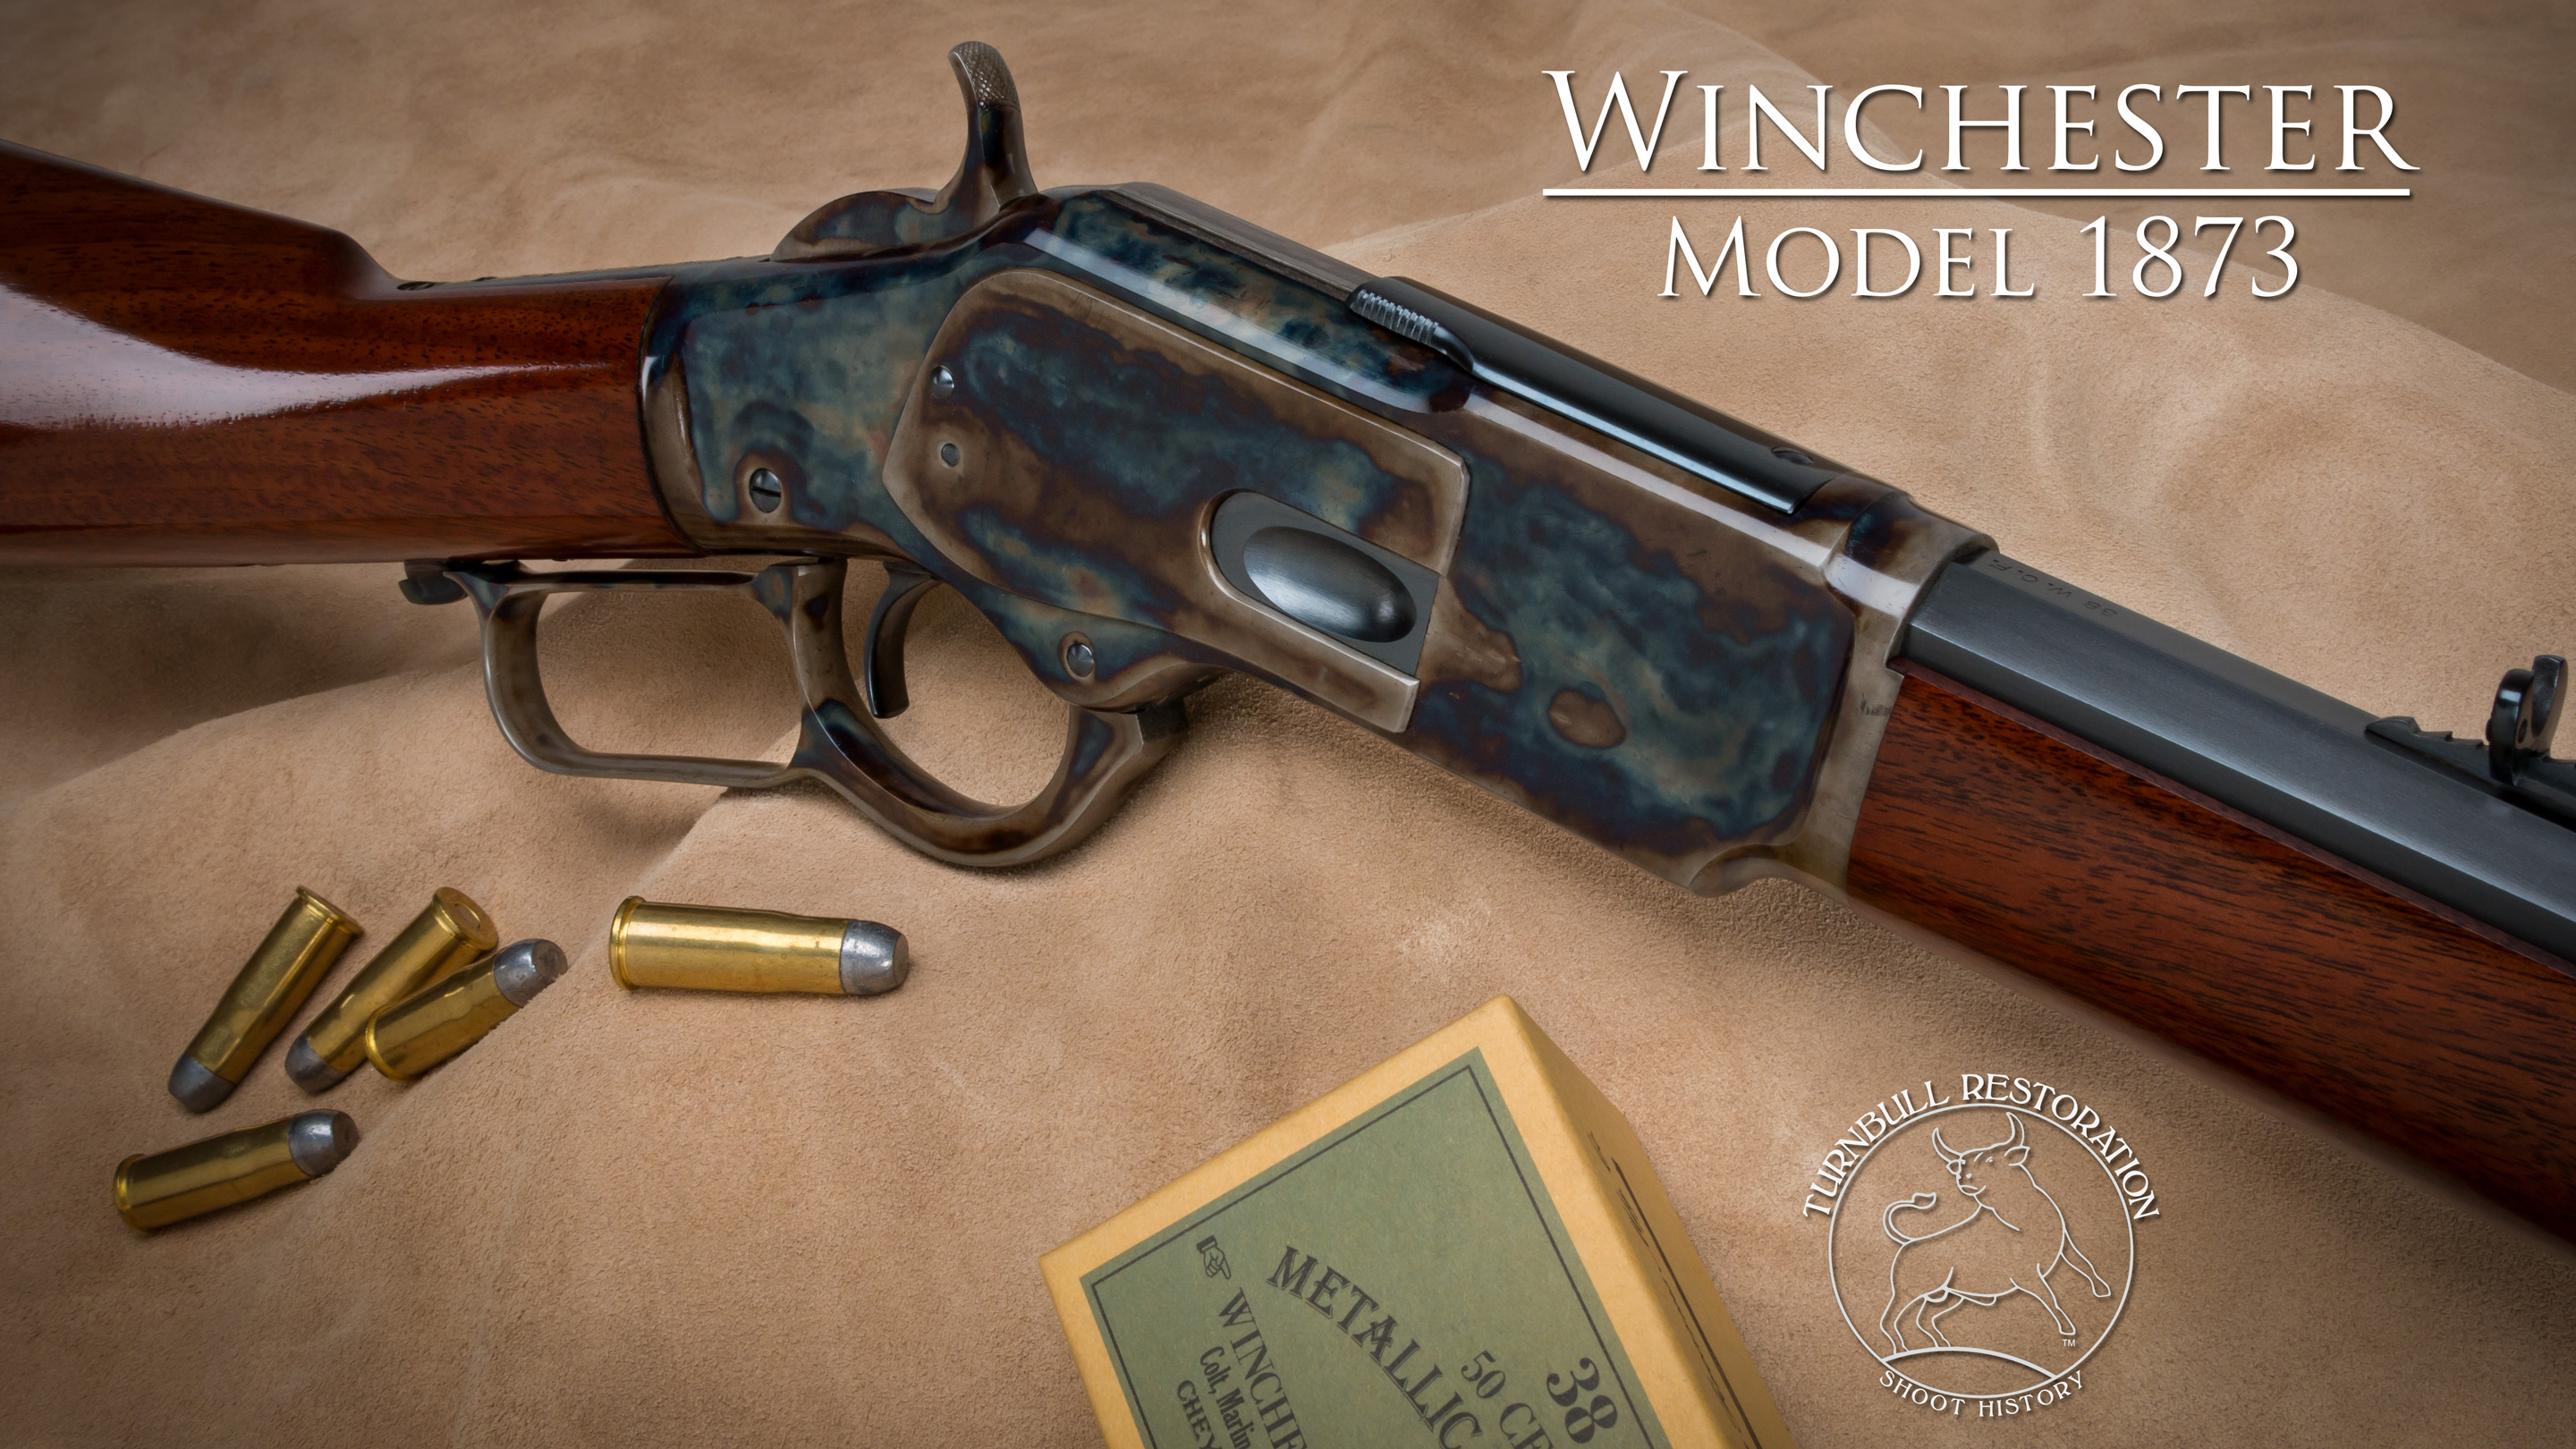 Home / The Showroom / Restored Firearms / Restored Winchester 1873 SOLD